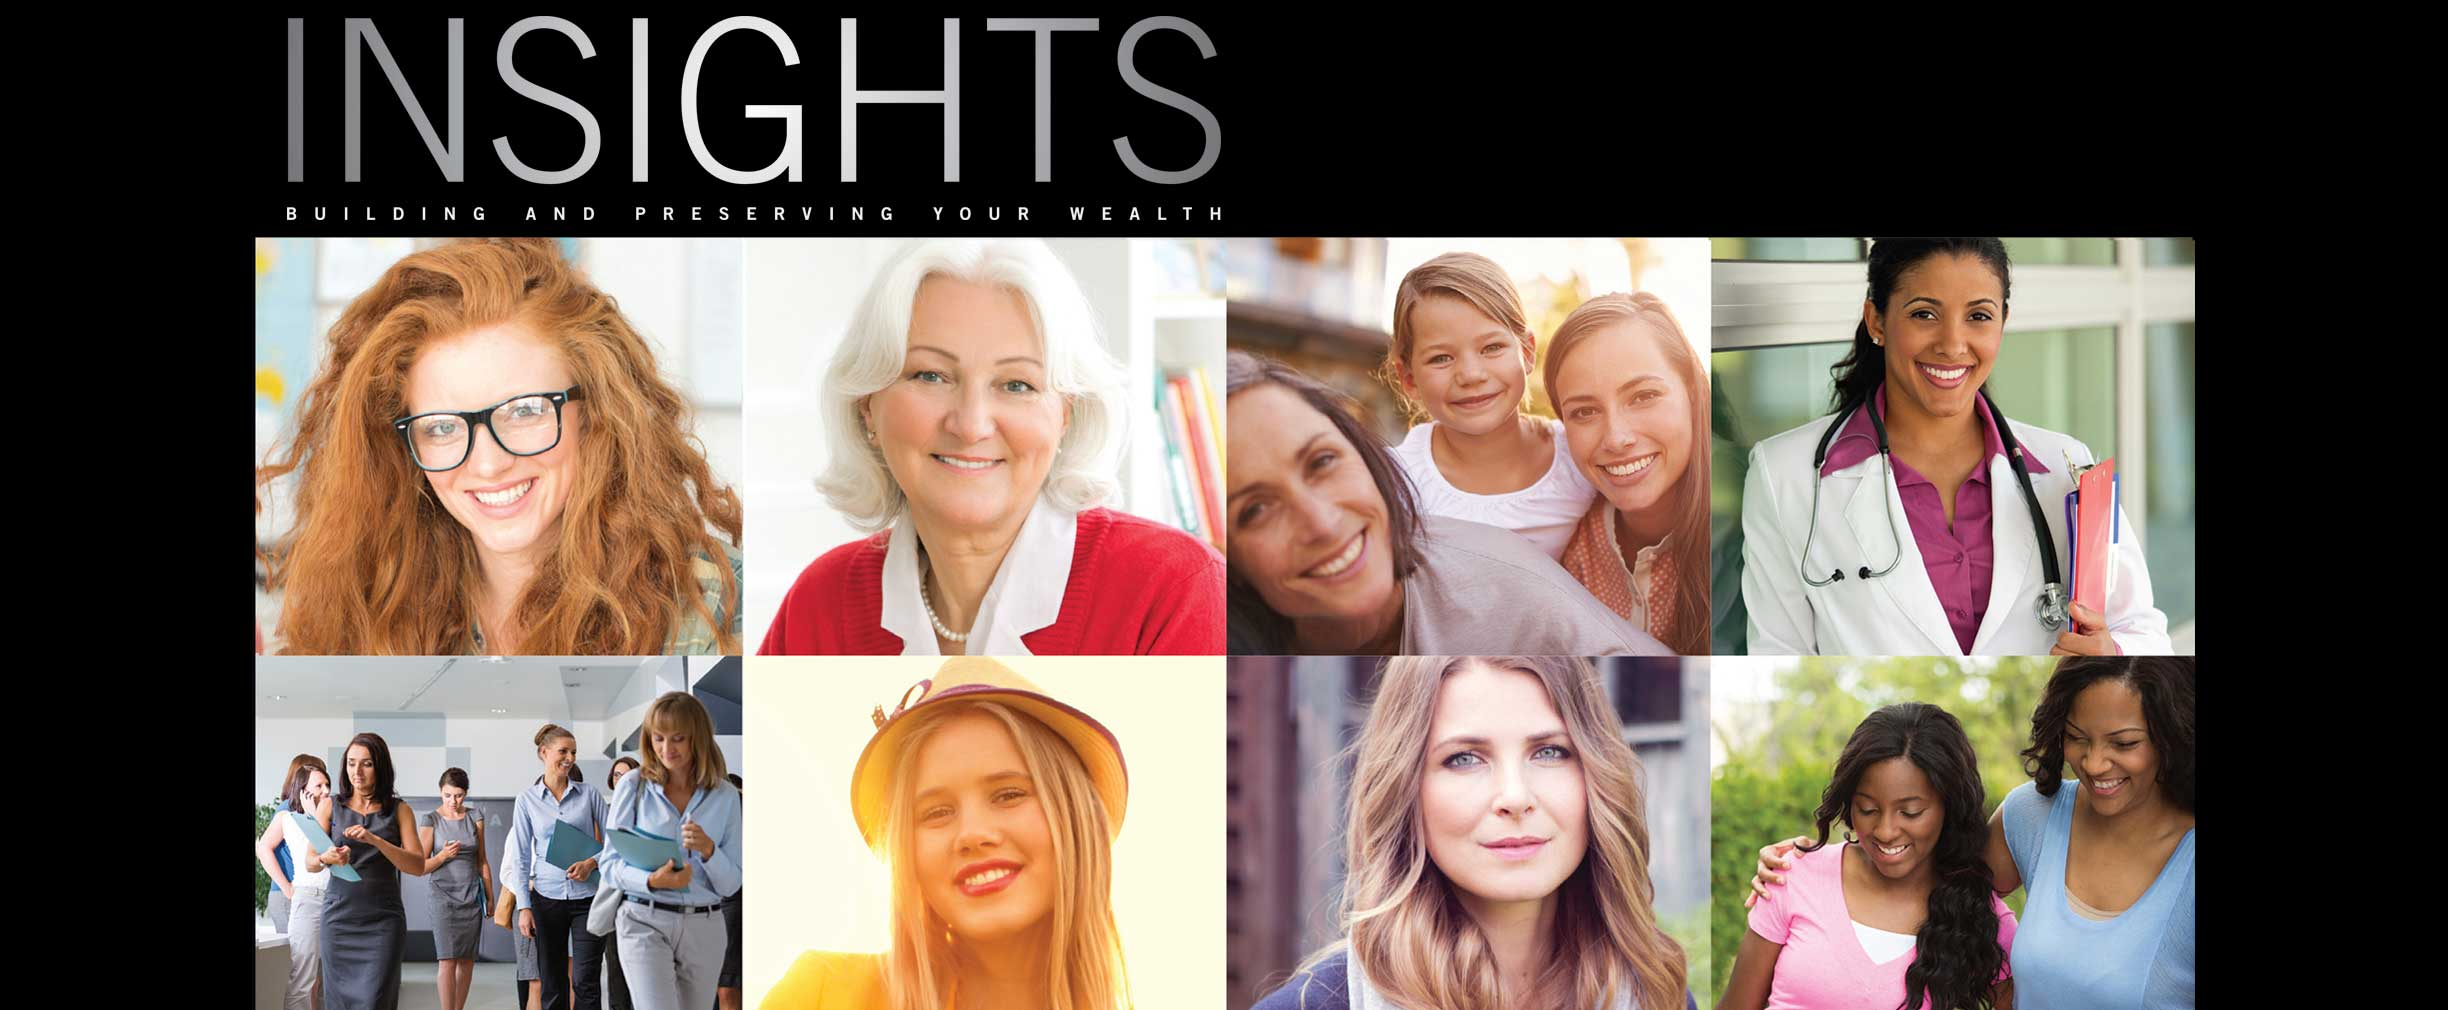 Insights Magazine Fall 2015 Women and Wealth